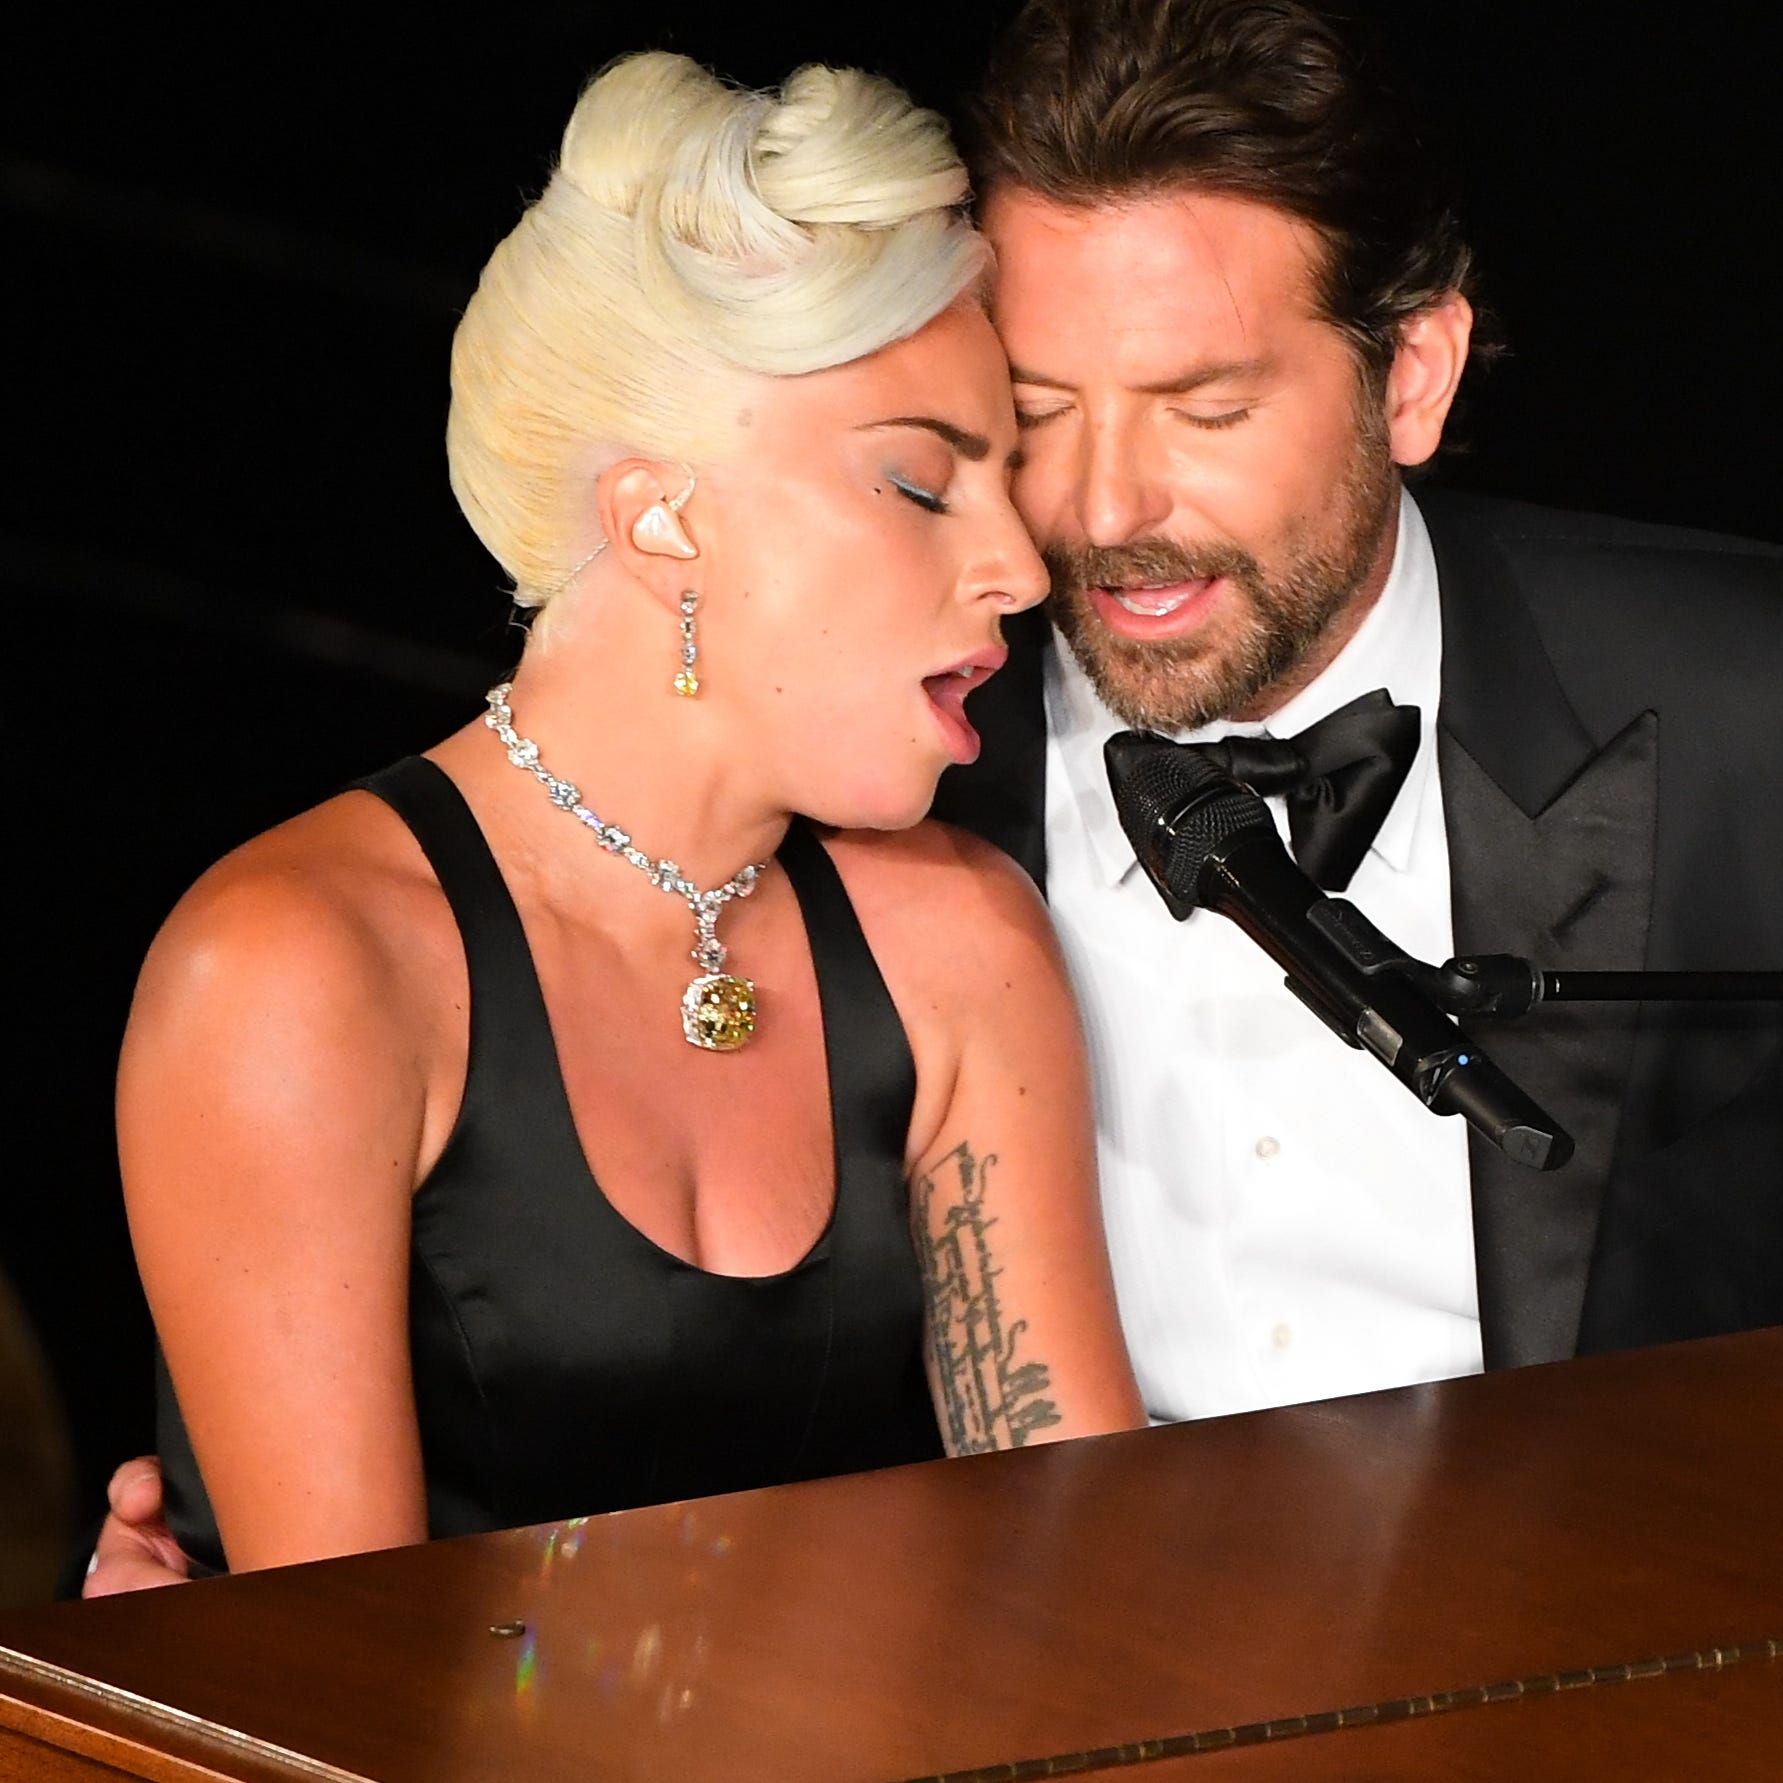 Lady Gaga calls Bradley Cooper 'a true friend' after sexy Oscars performance of 'Shallow'